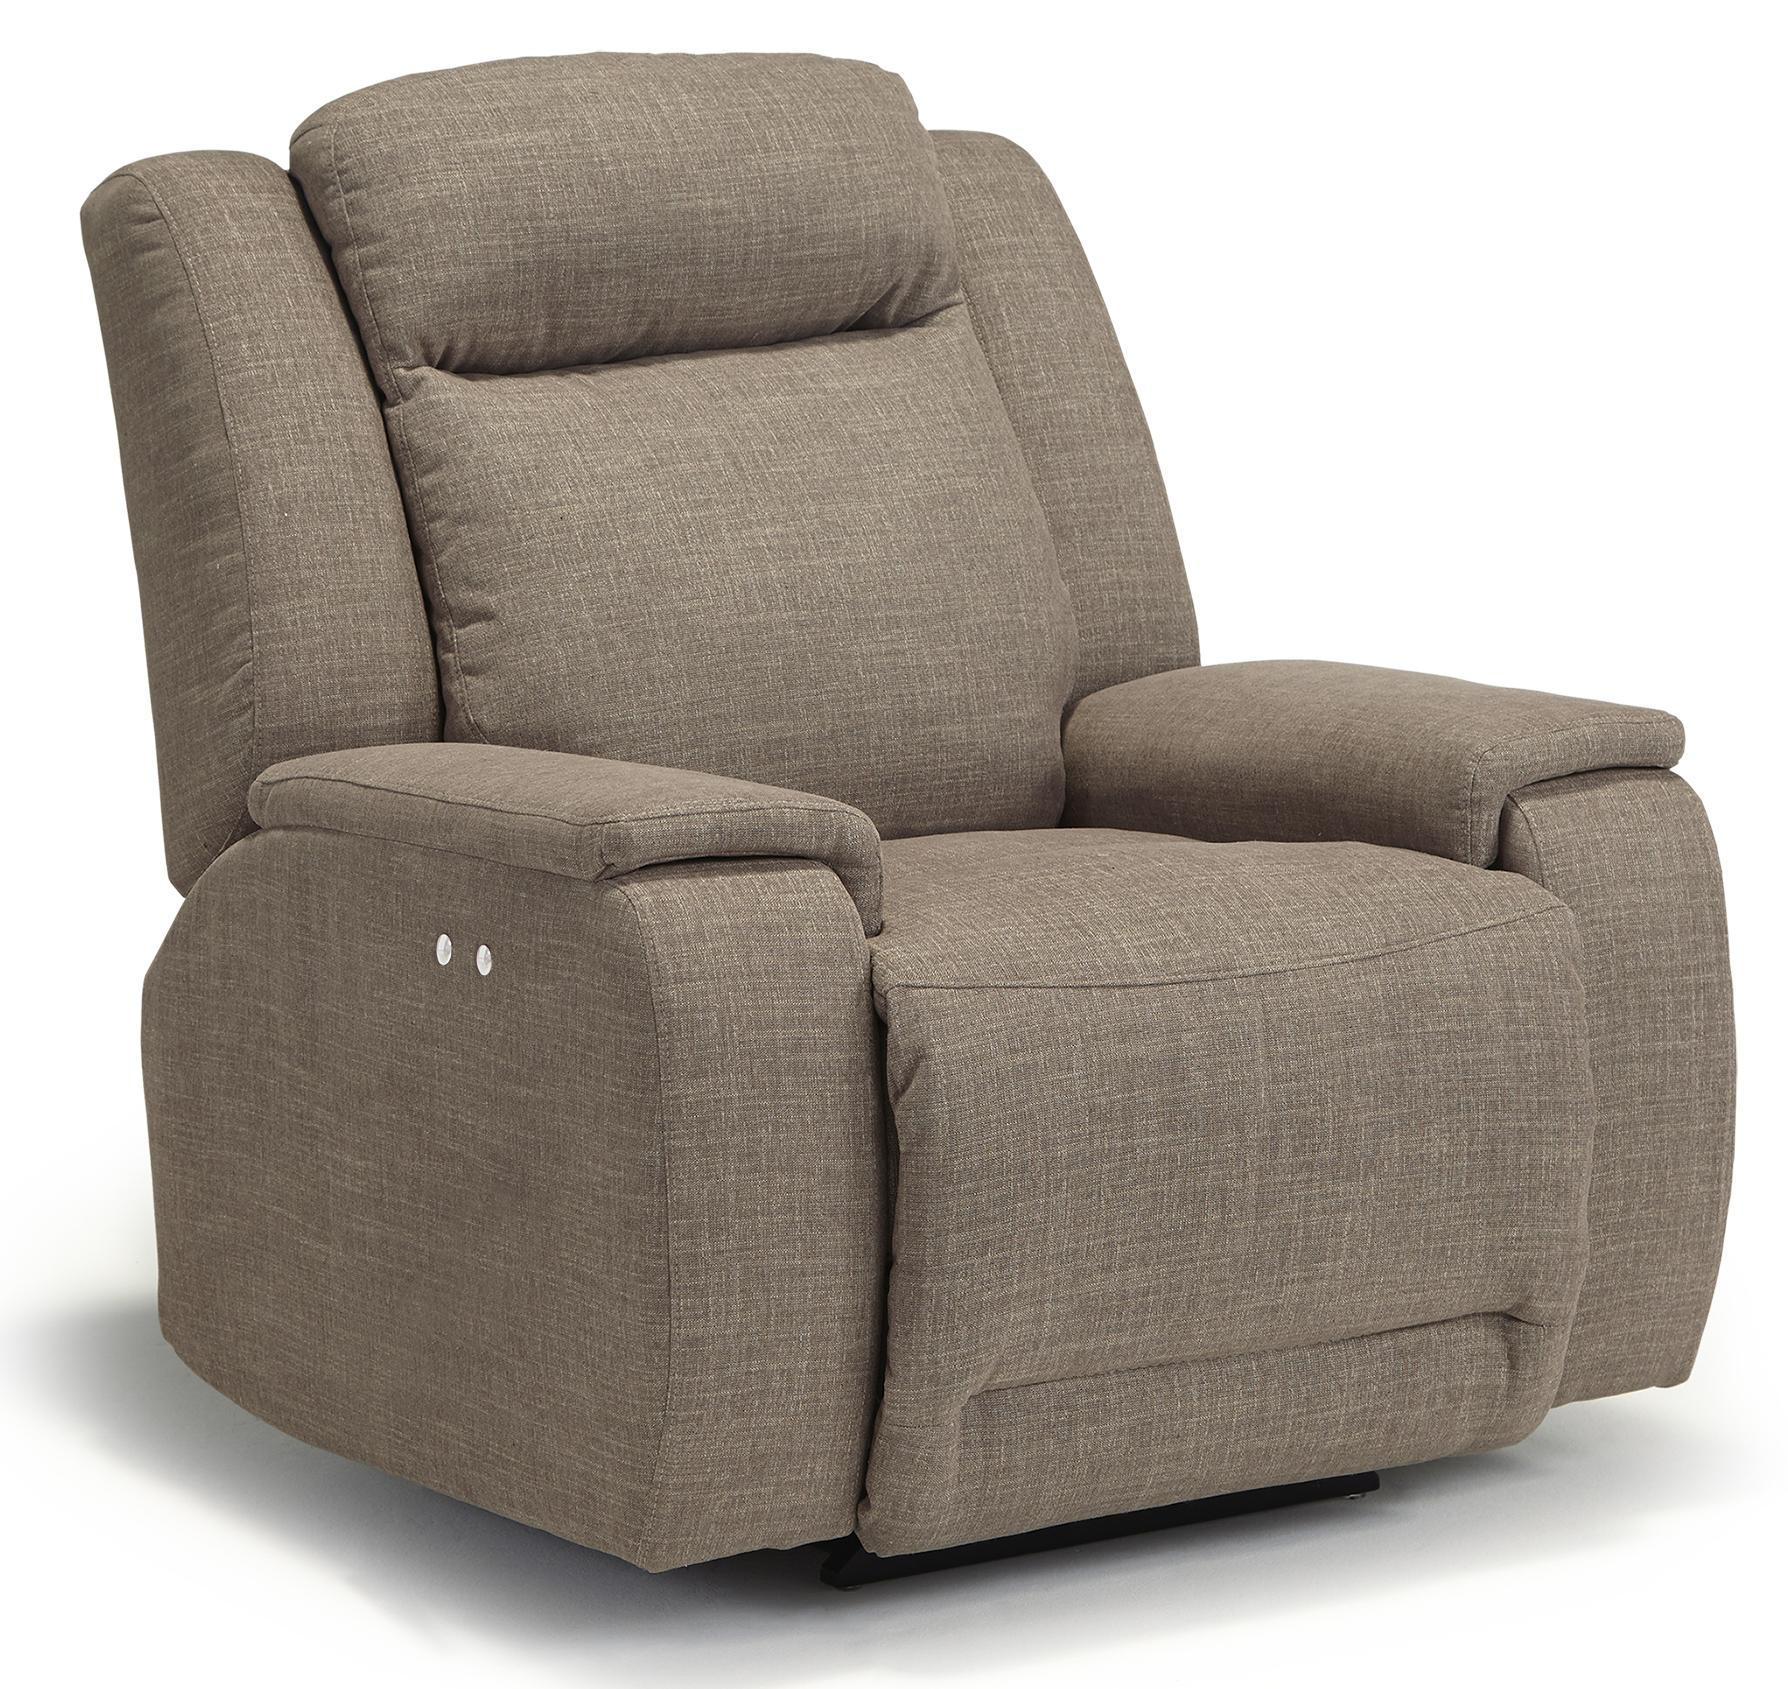 Best Home Furnishings Hardisty Power Space Saver Recliner - Item Number: 6NP84-24699